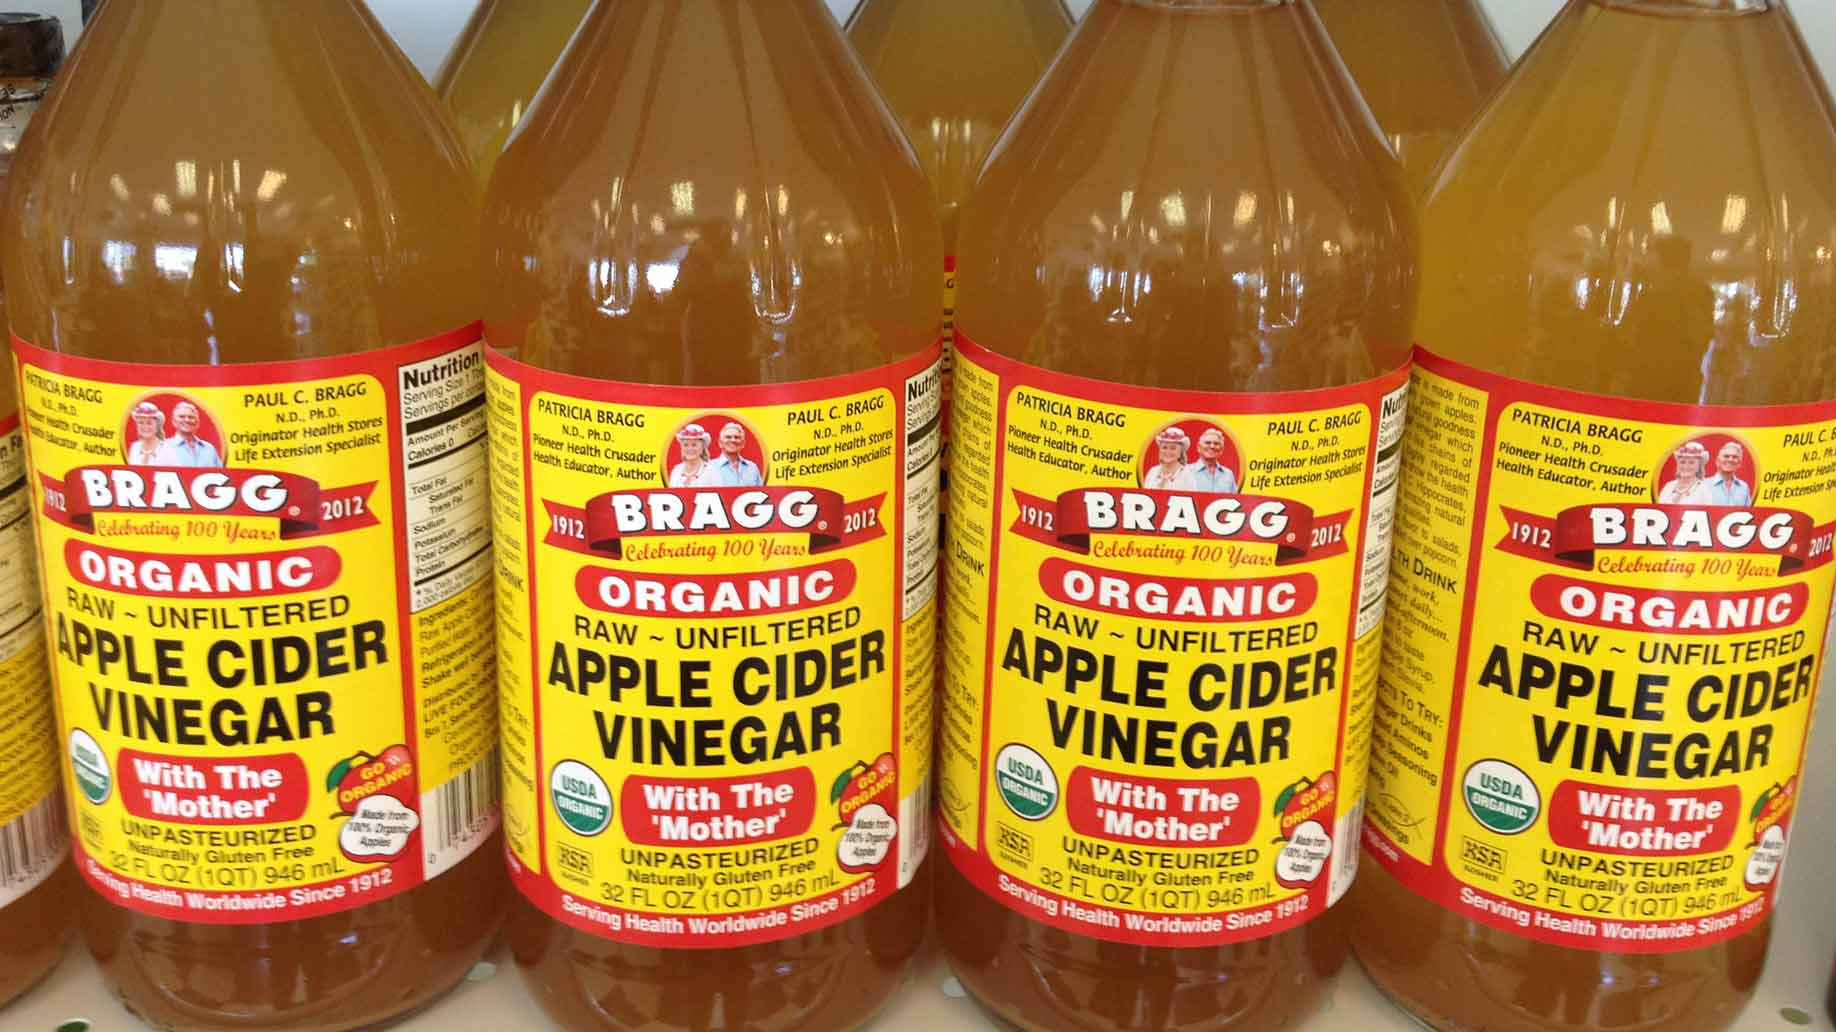 bragg organic raw unfiltered apple cider vinegar in glass jar with the